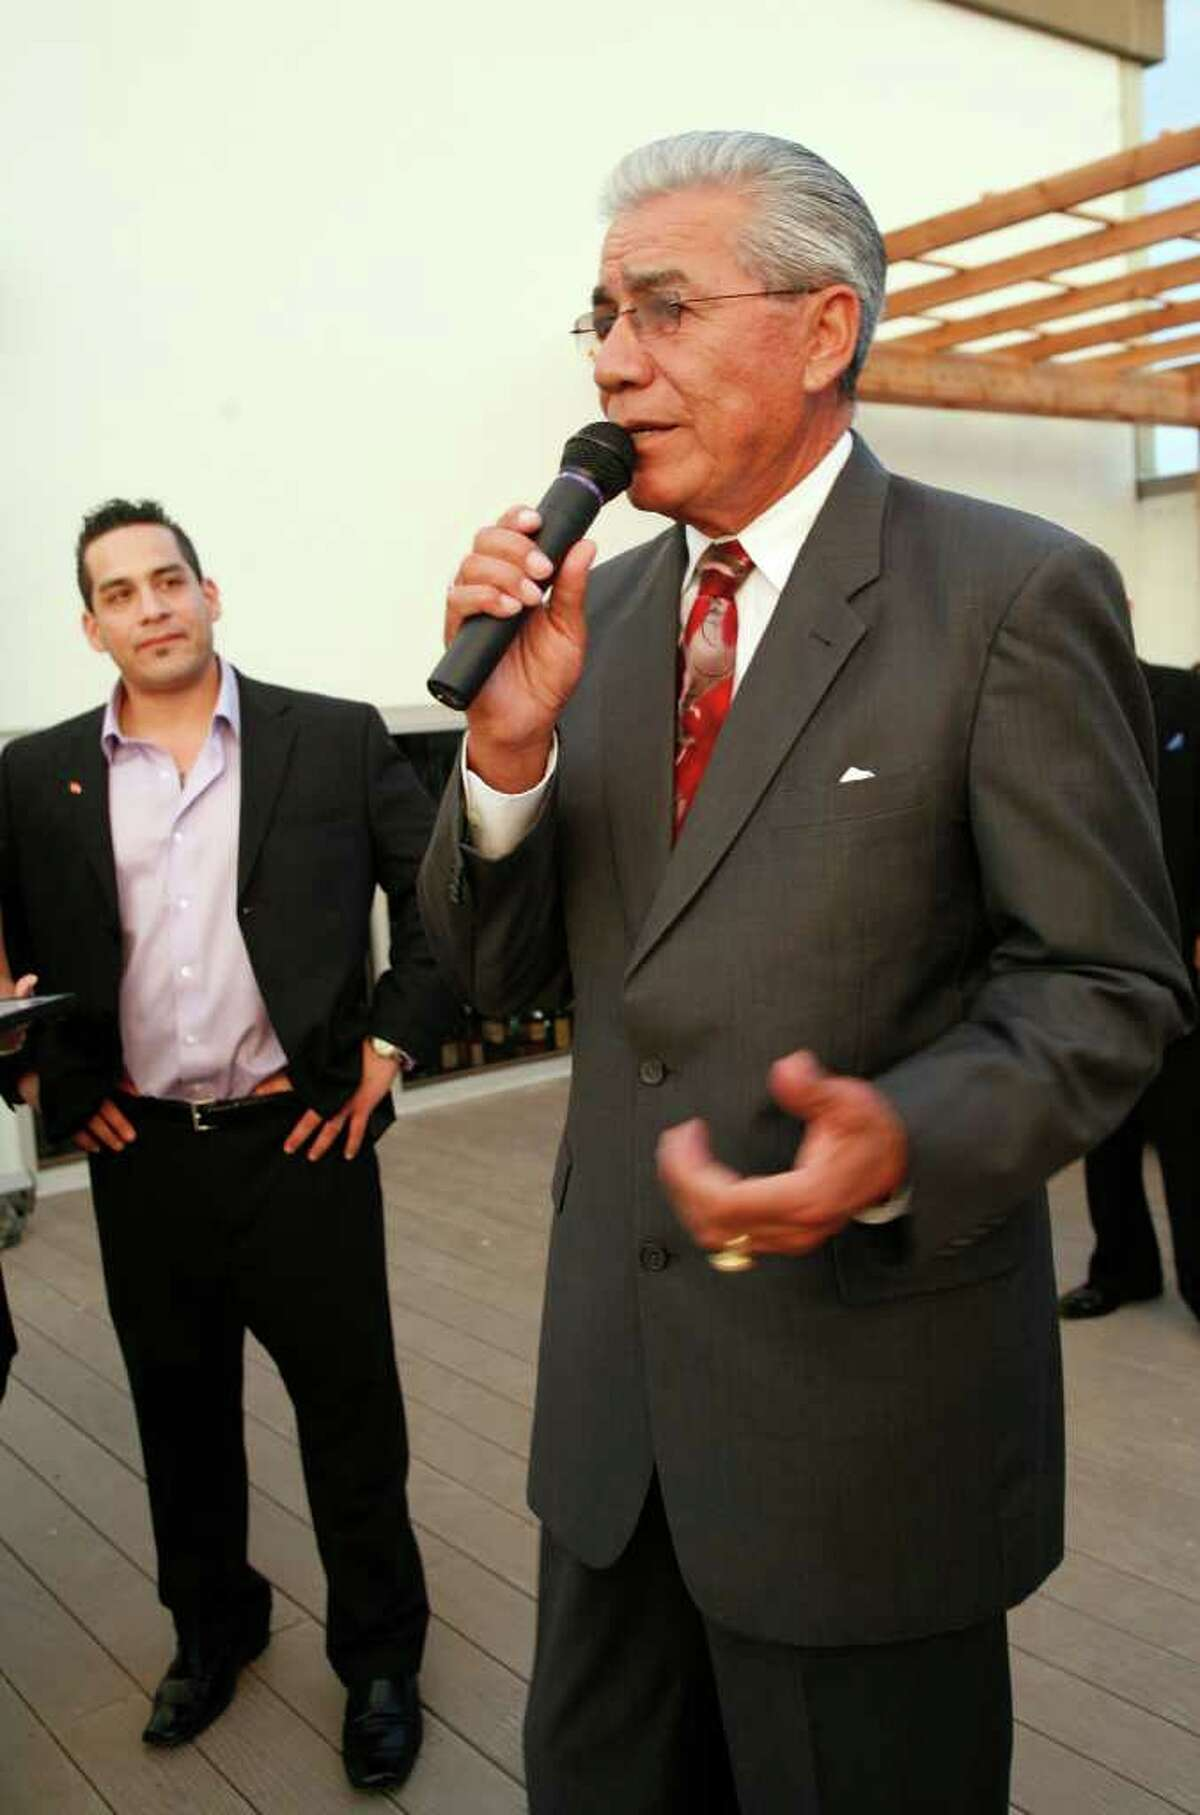 TRENDS; TRENDS INFLUENCE JMS; 06/24/10; Ruben Ramos receives a citation at